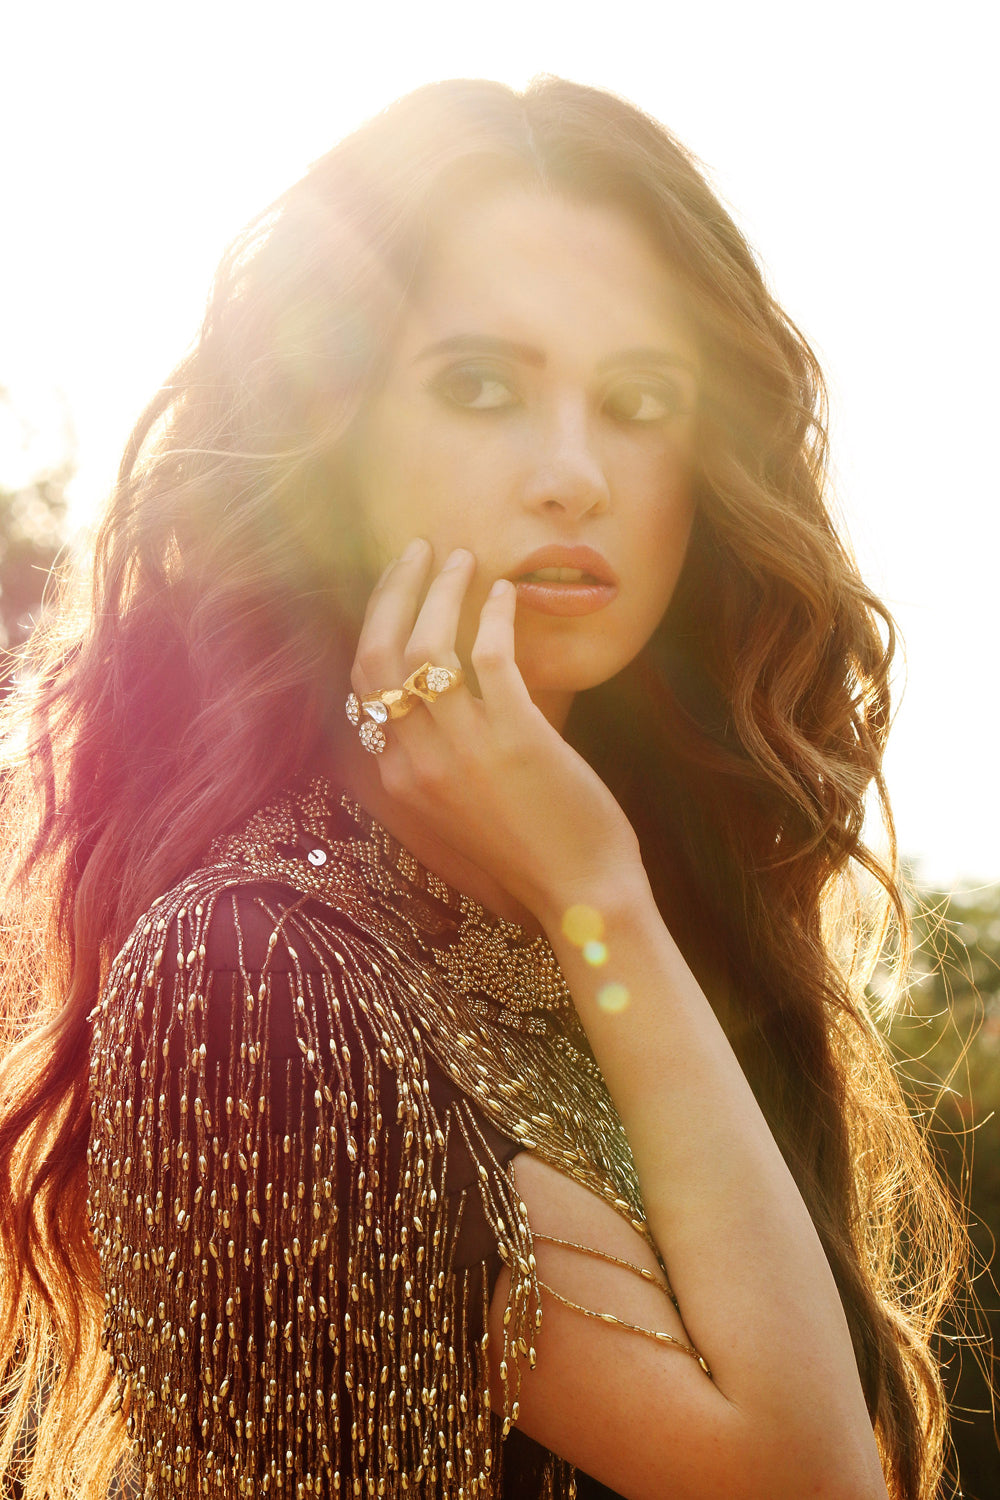 Laura Marano in Jamo magazine wearing Jenny Dayco rings